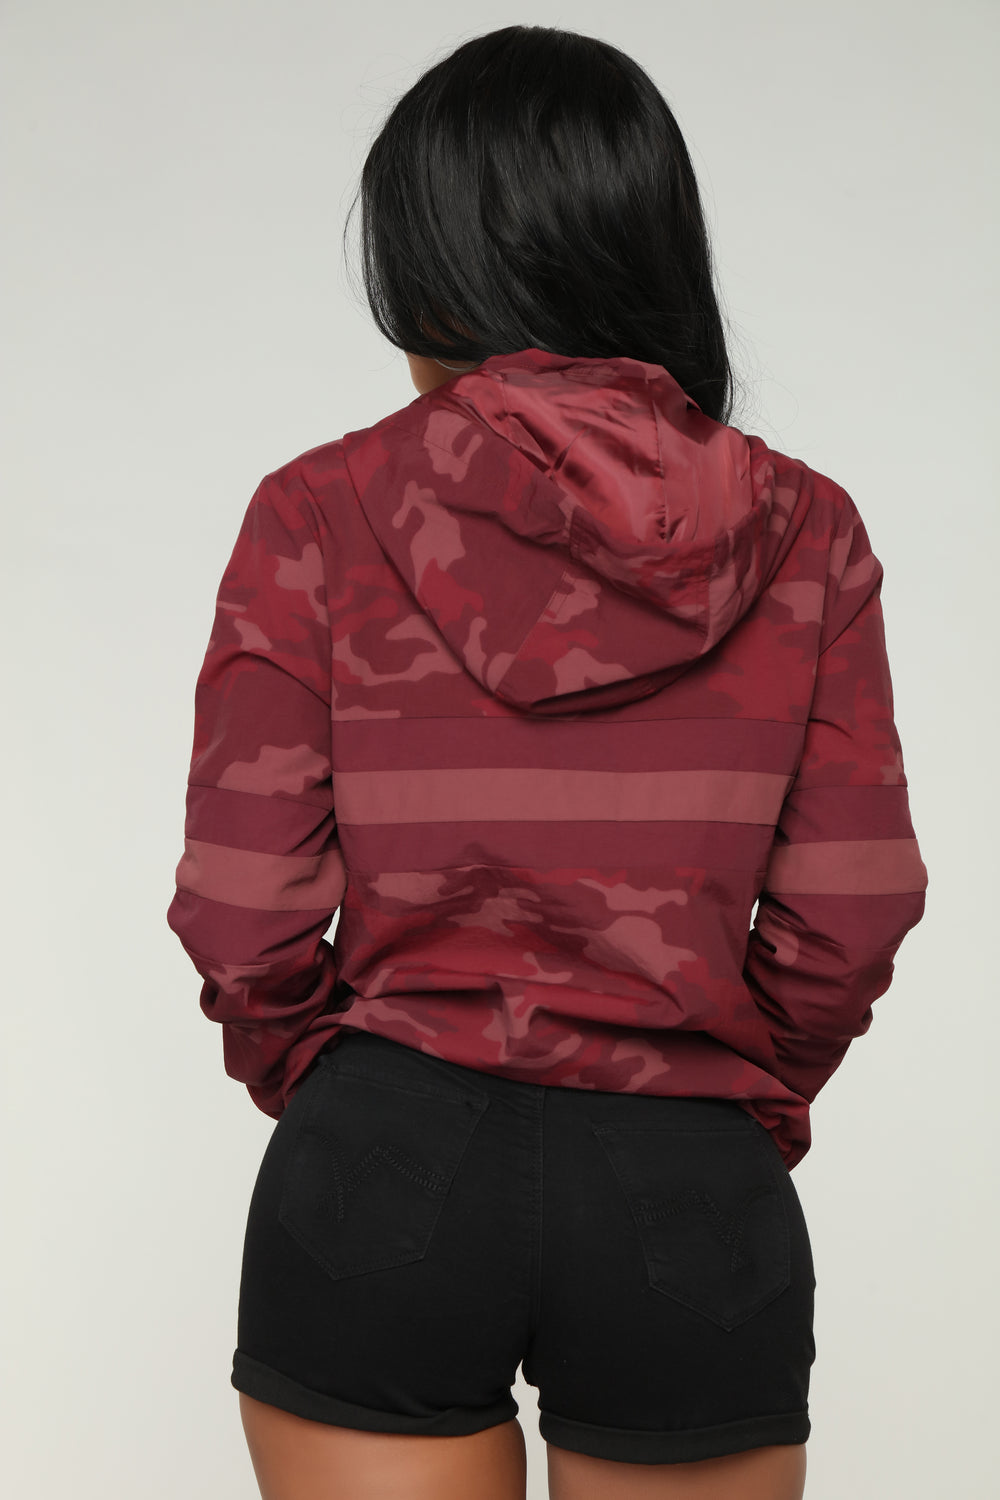 Hiding From You Jacket - Burgundy/camo